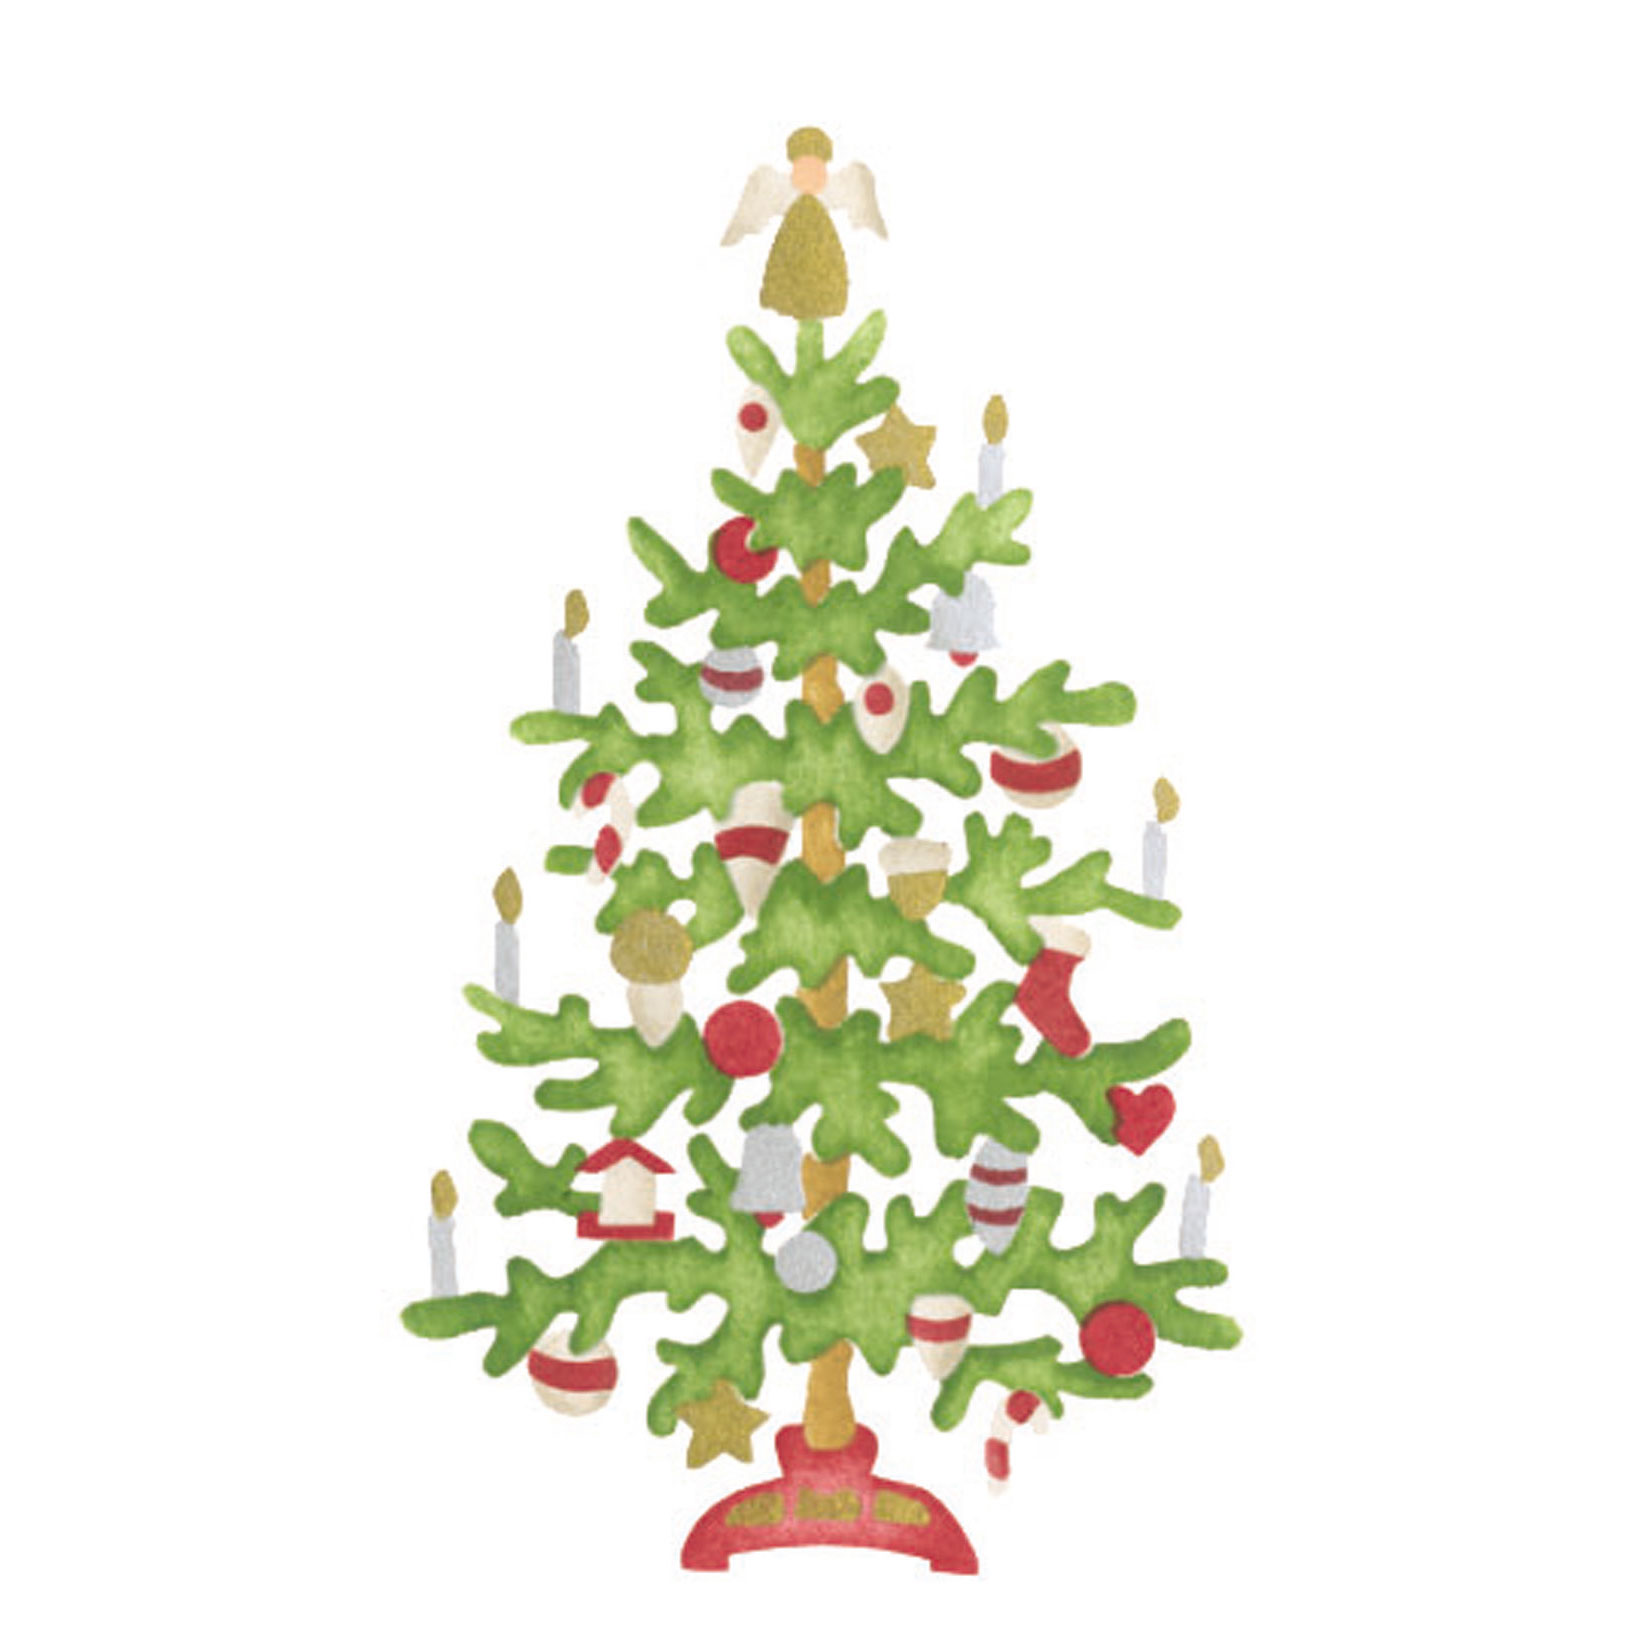 Small Christmas Tree Wall Stencil Sku 3373a Designer Stencils